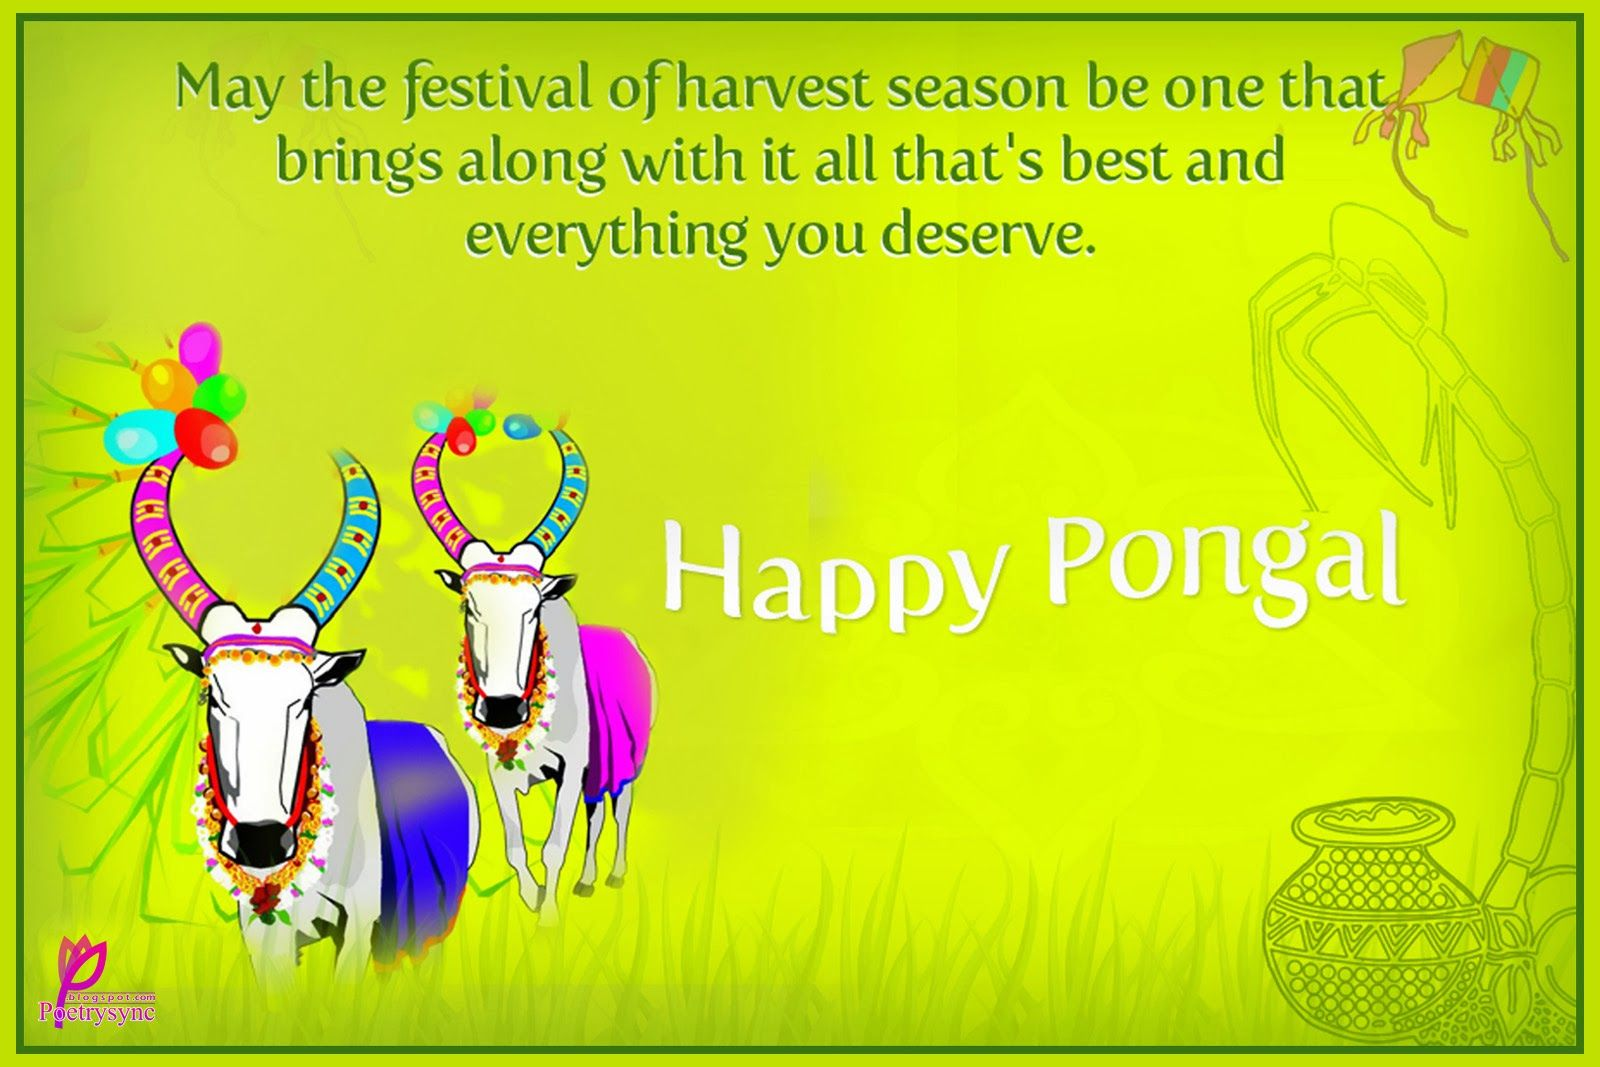 Pongal Festival Essay Traditional Pongal Celebrations 13 2017